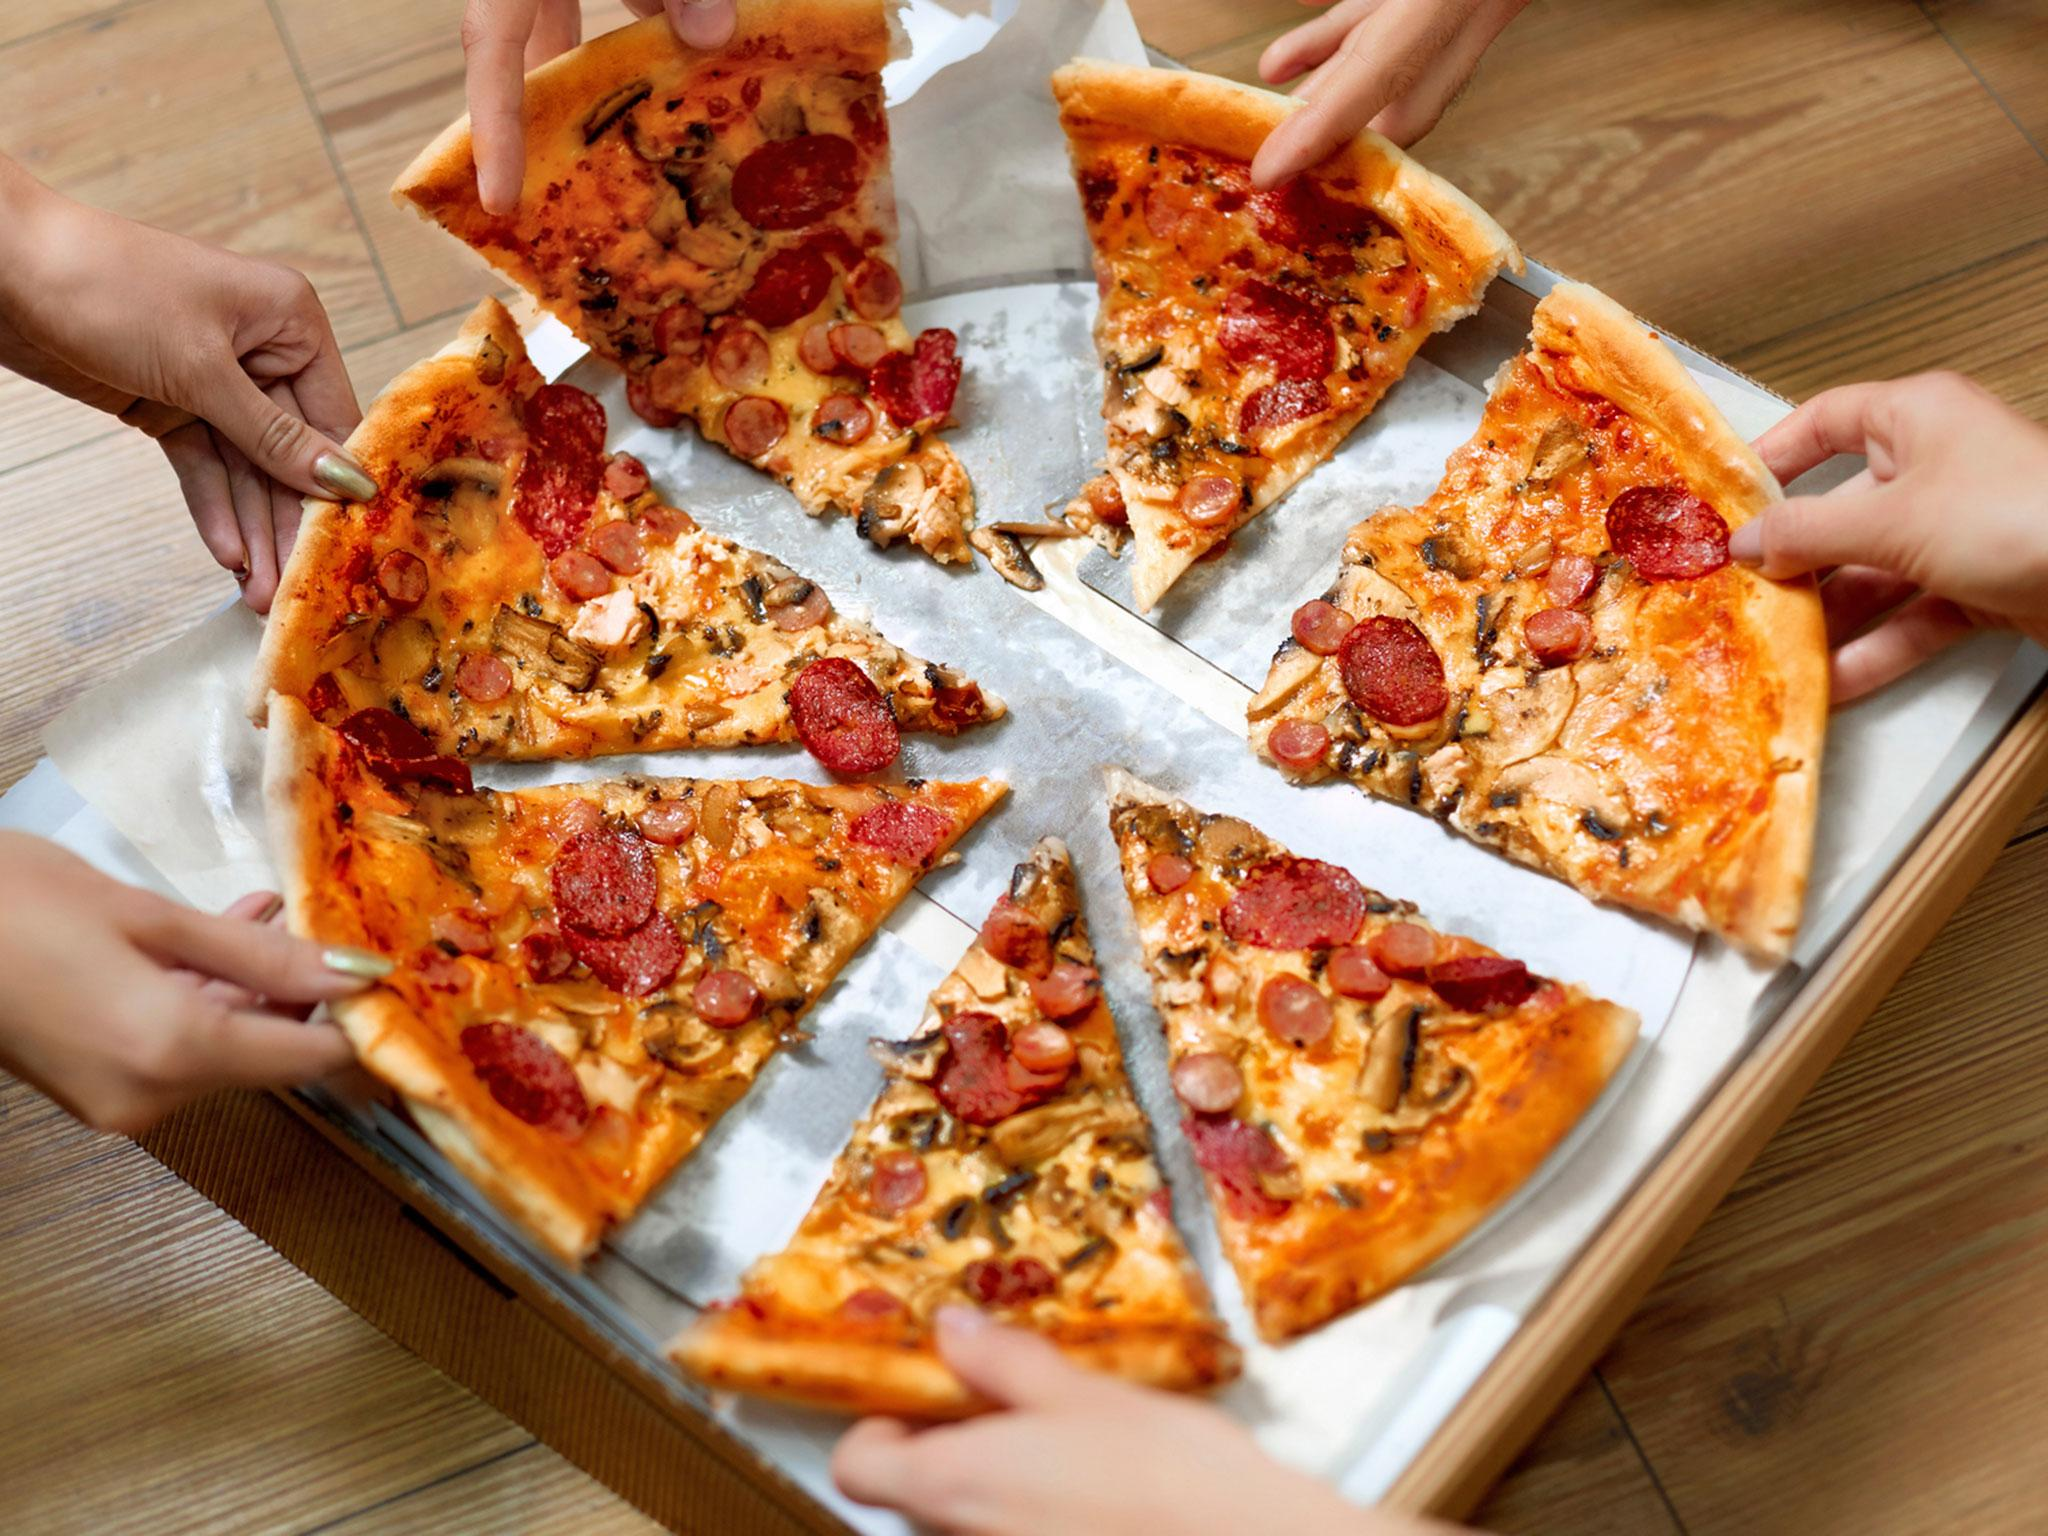 How To Eat A Pizza Properly According To The Experts